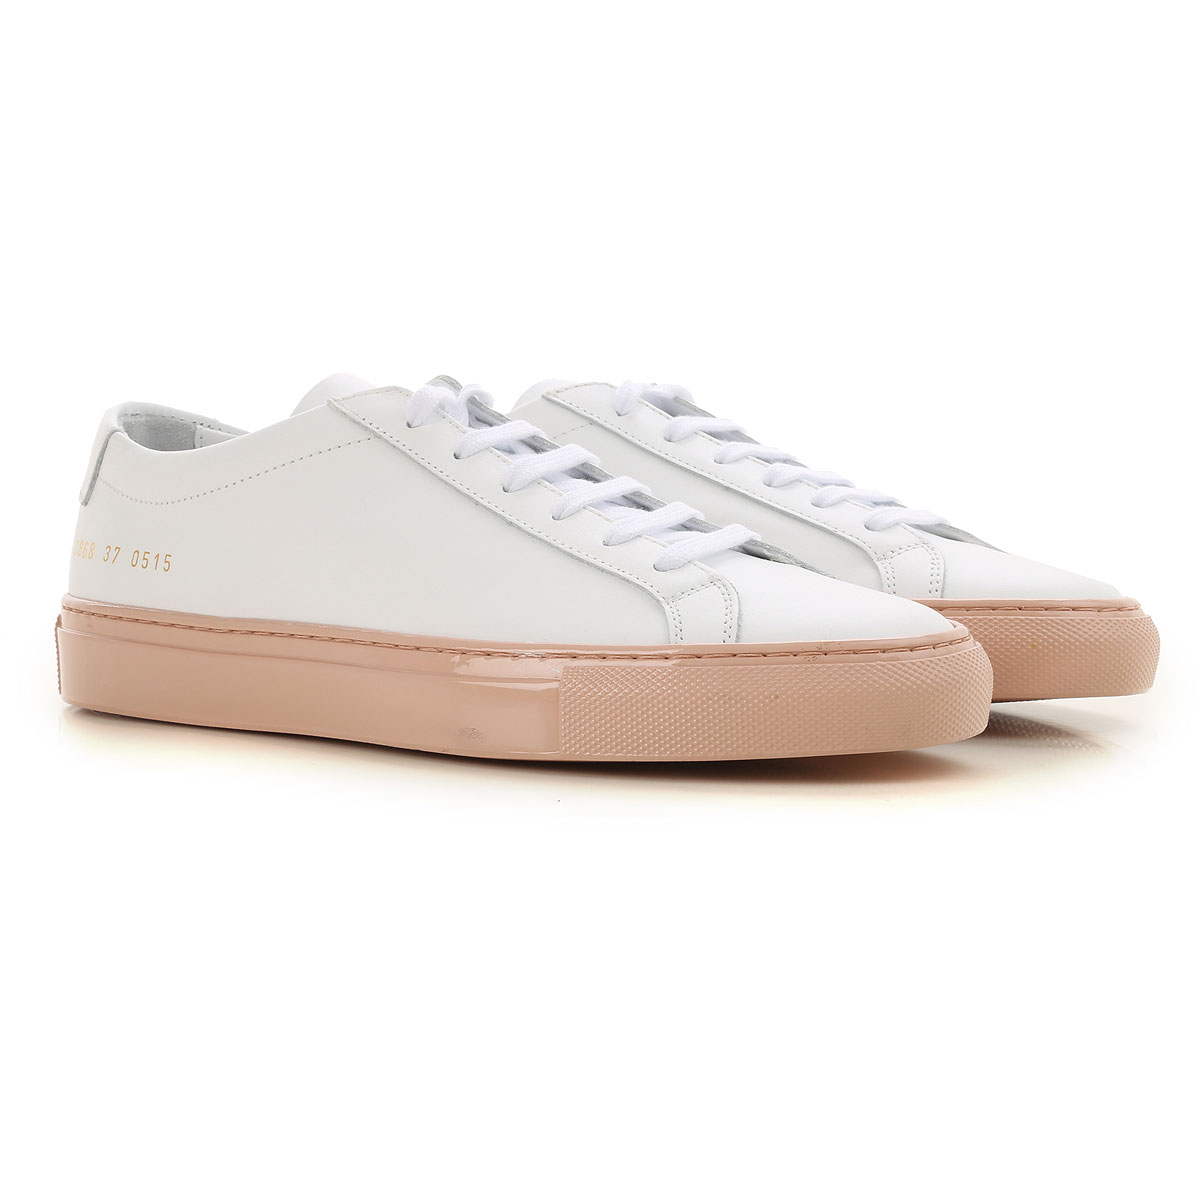 Image of Woman by Common Projects Sneakers for Women, White, Leather, 2017, 6 7 8 9